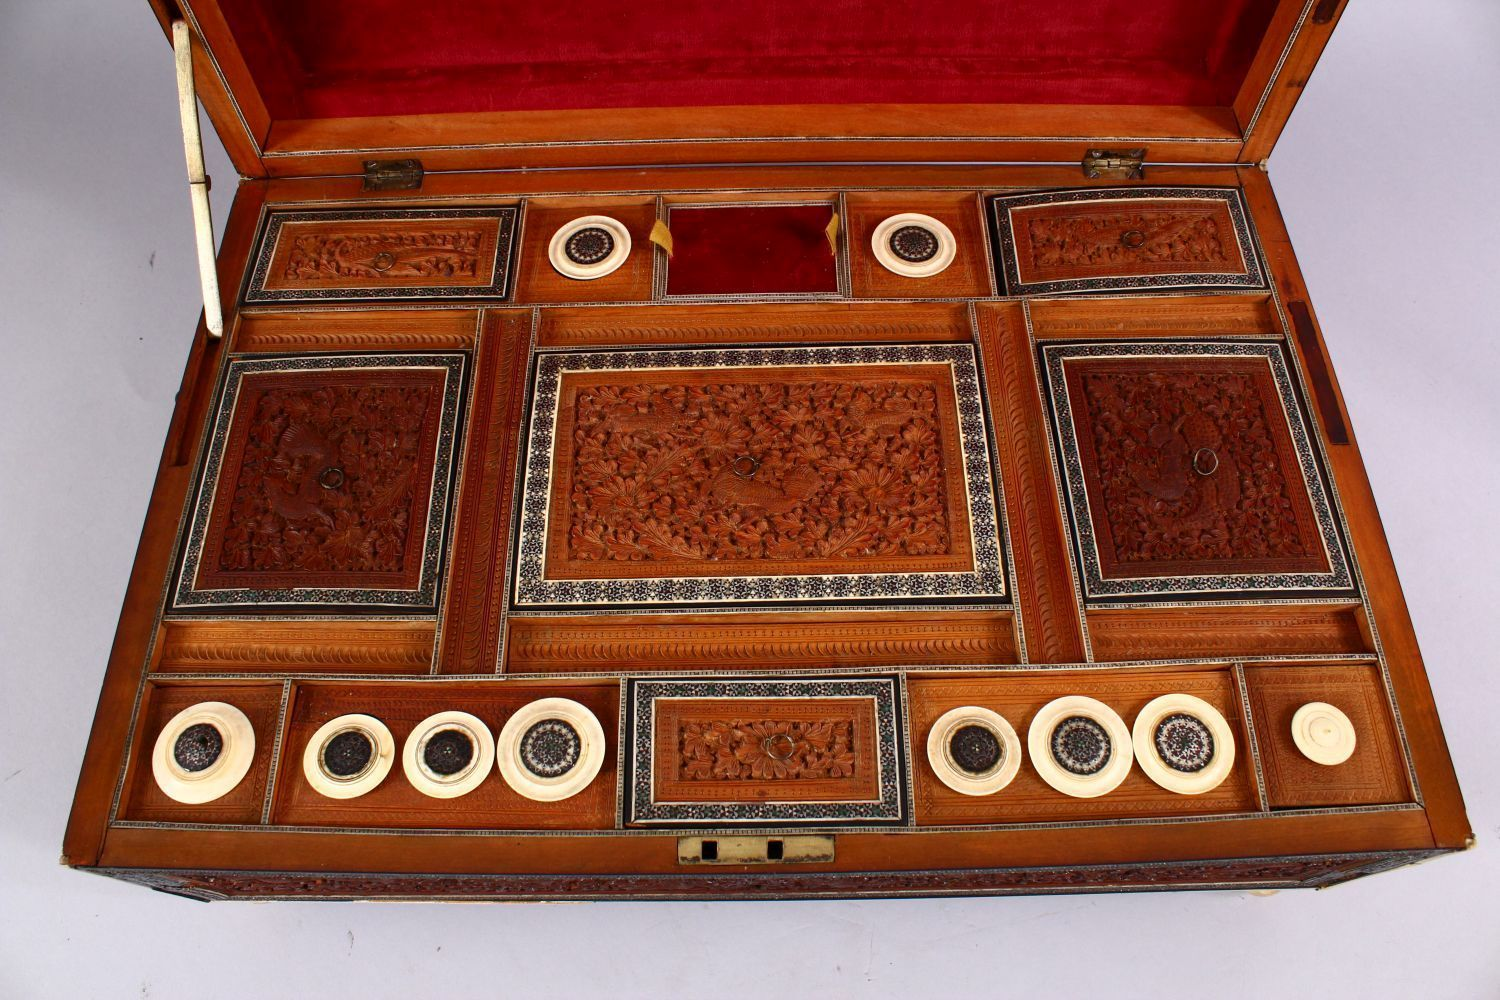 A 19TH CENTURY ANGLO INDIAN INLAID LIDDED SEWING BOX, with carved wood depicting figures and animals - Image 4 of 10